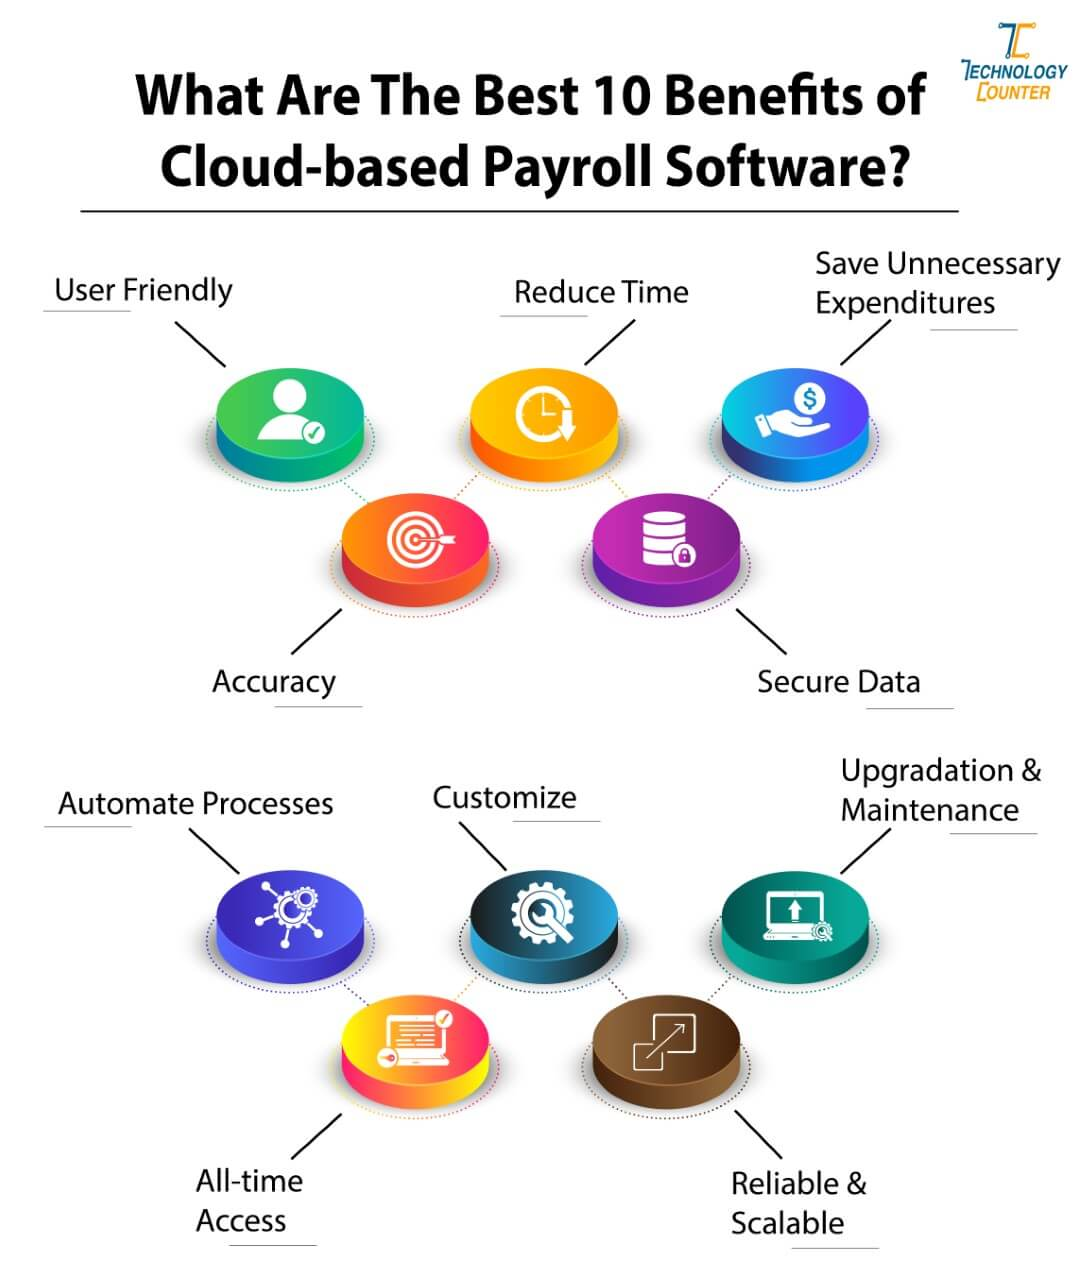 Benefits of Using Cloud-Based Payroll